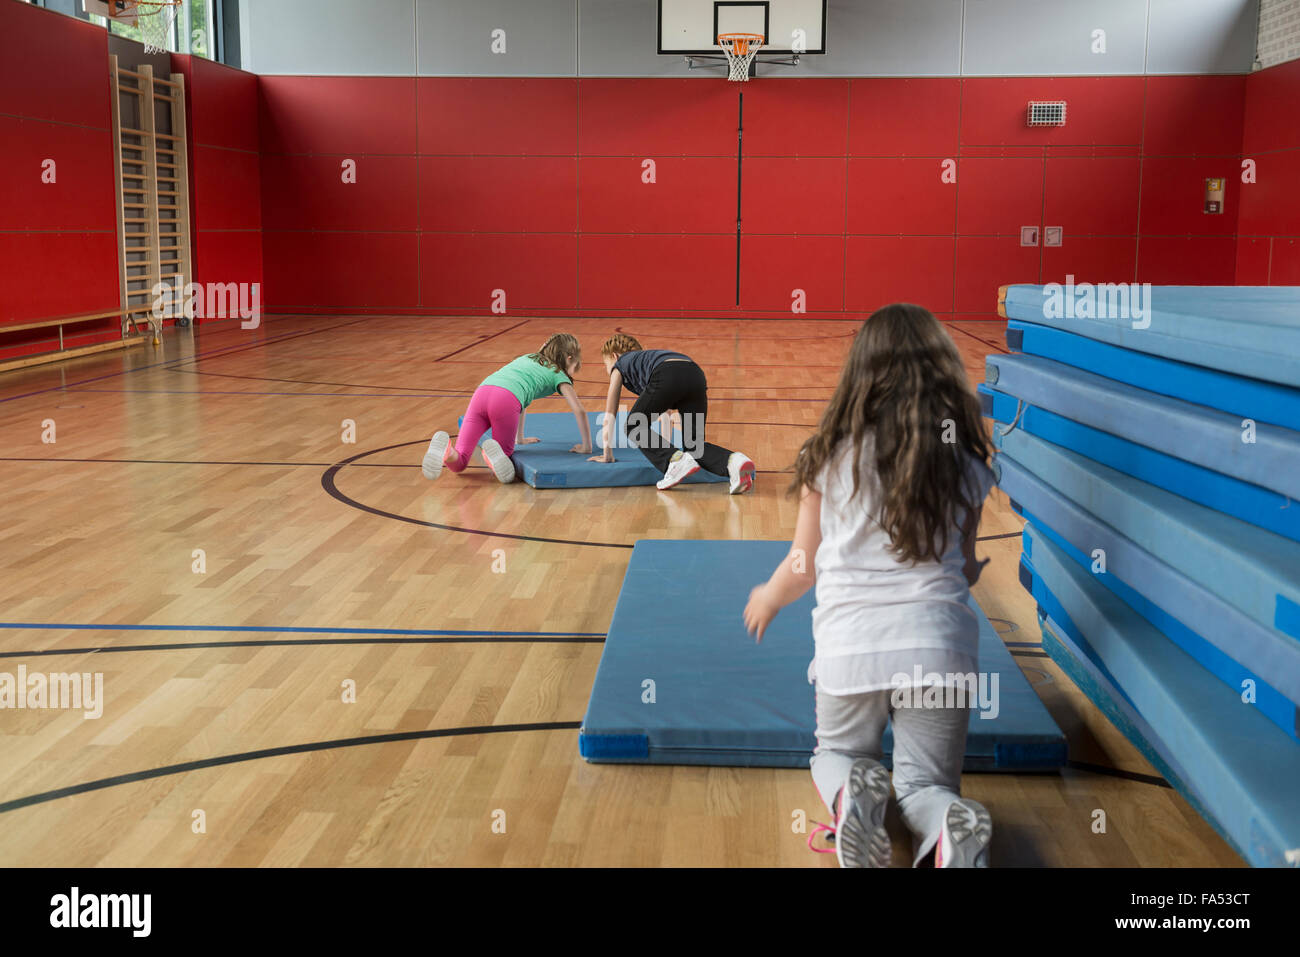 Girls arranging the sports mats in basketball court, Munich, Bavaria, Germany - Stock Image